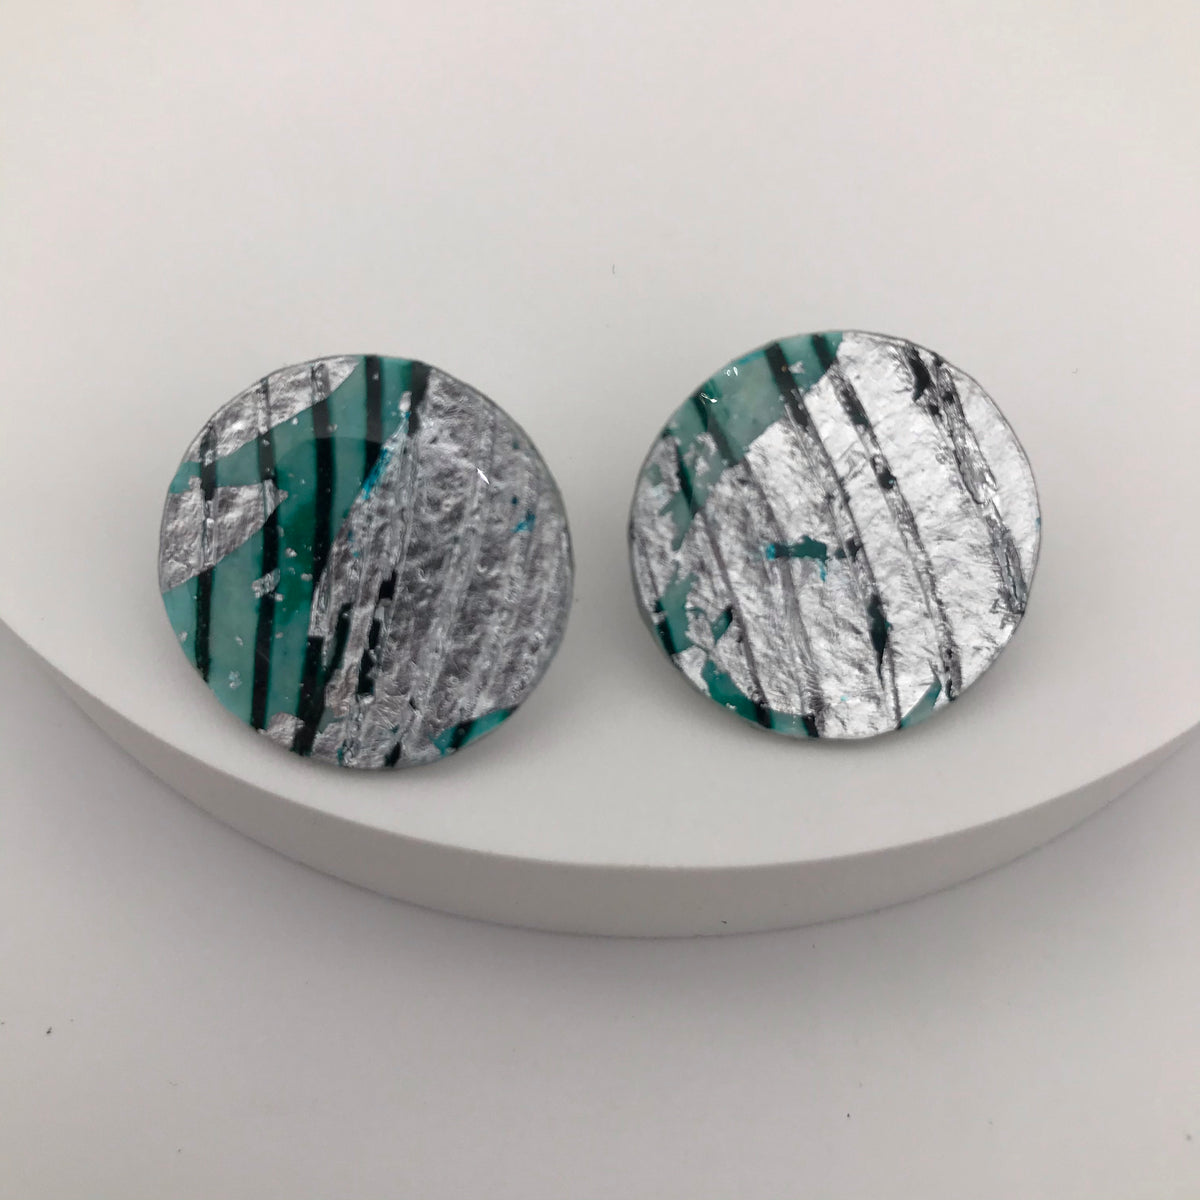 Ró sgraffito earrings in silver/aqua